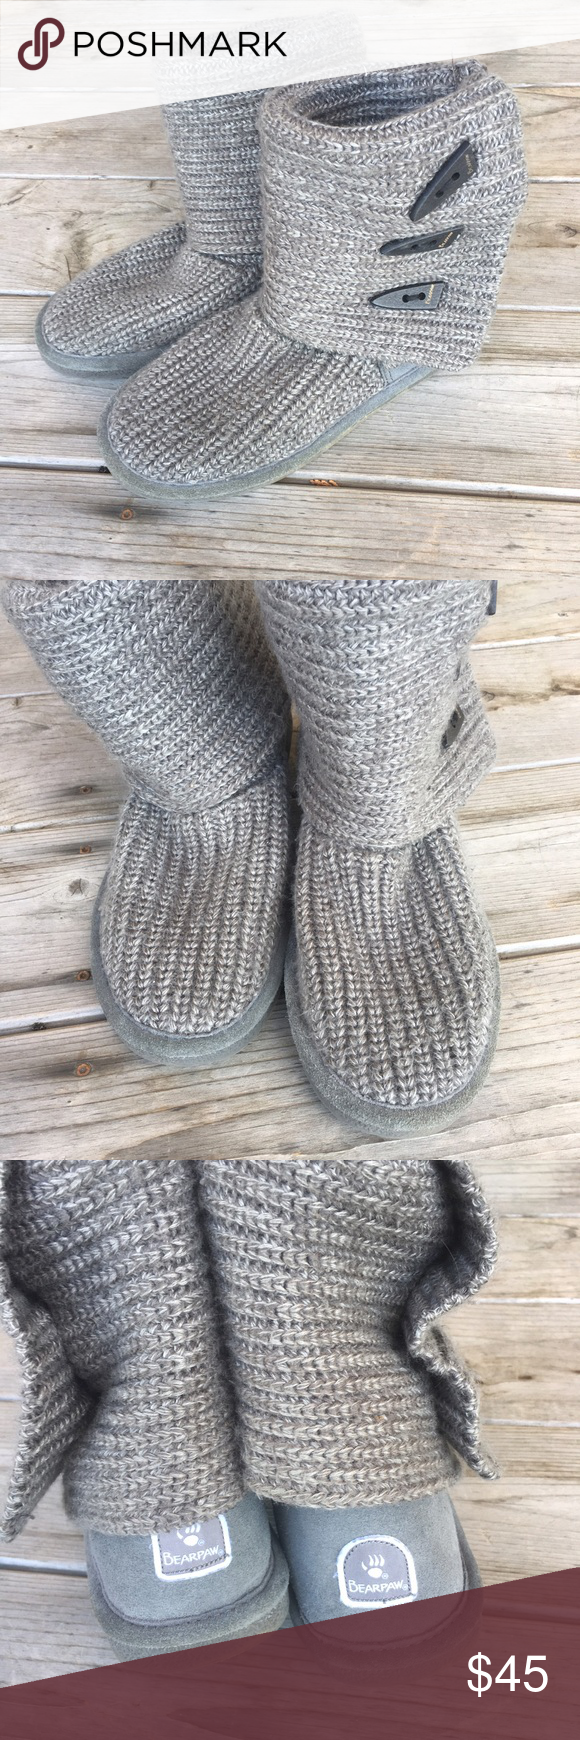 Grey Knit Bearpaw Boots First Picture Is An Idea Second